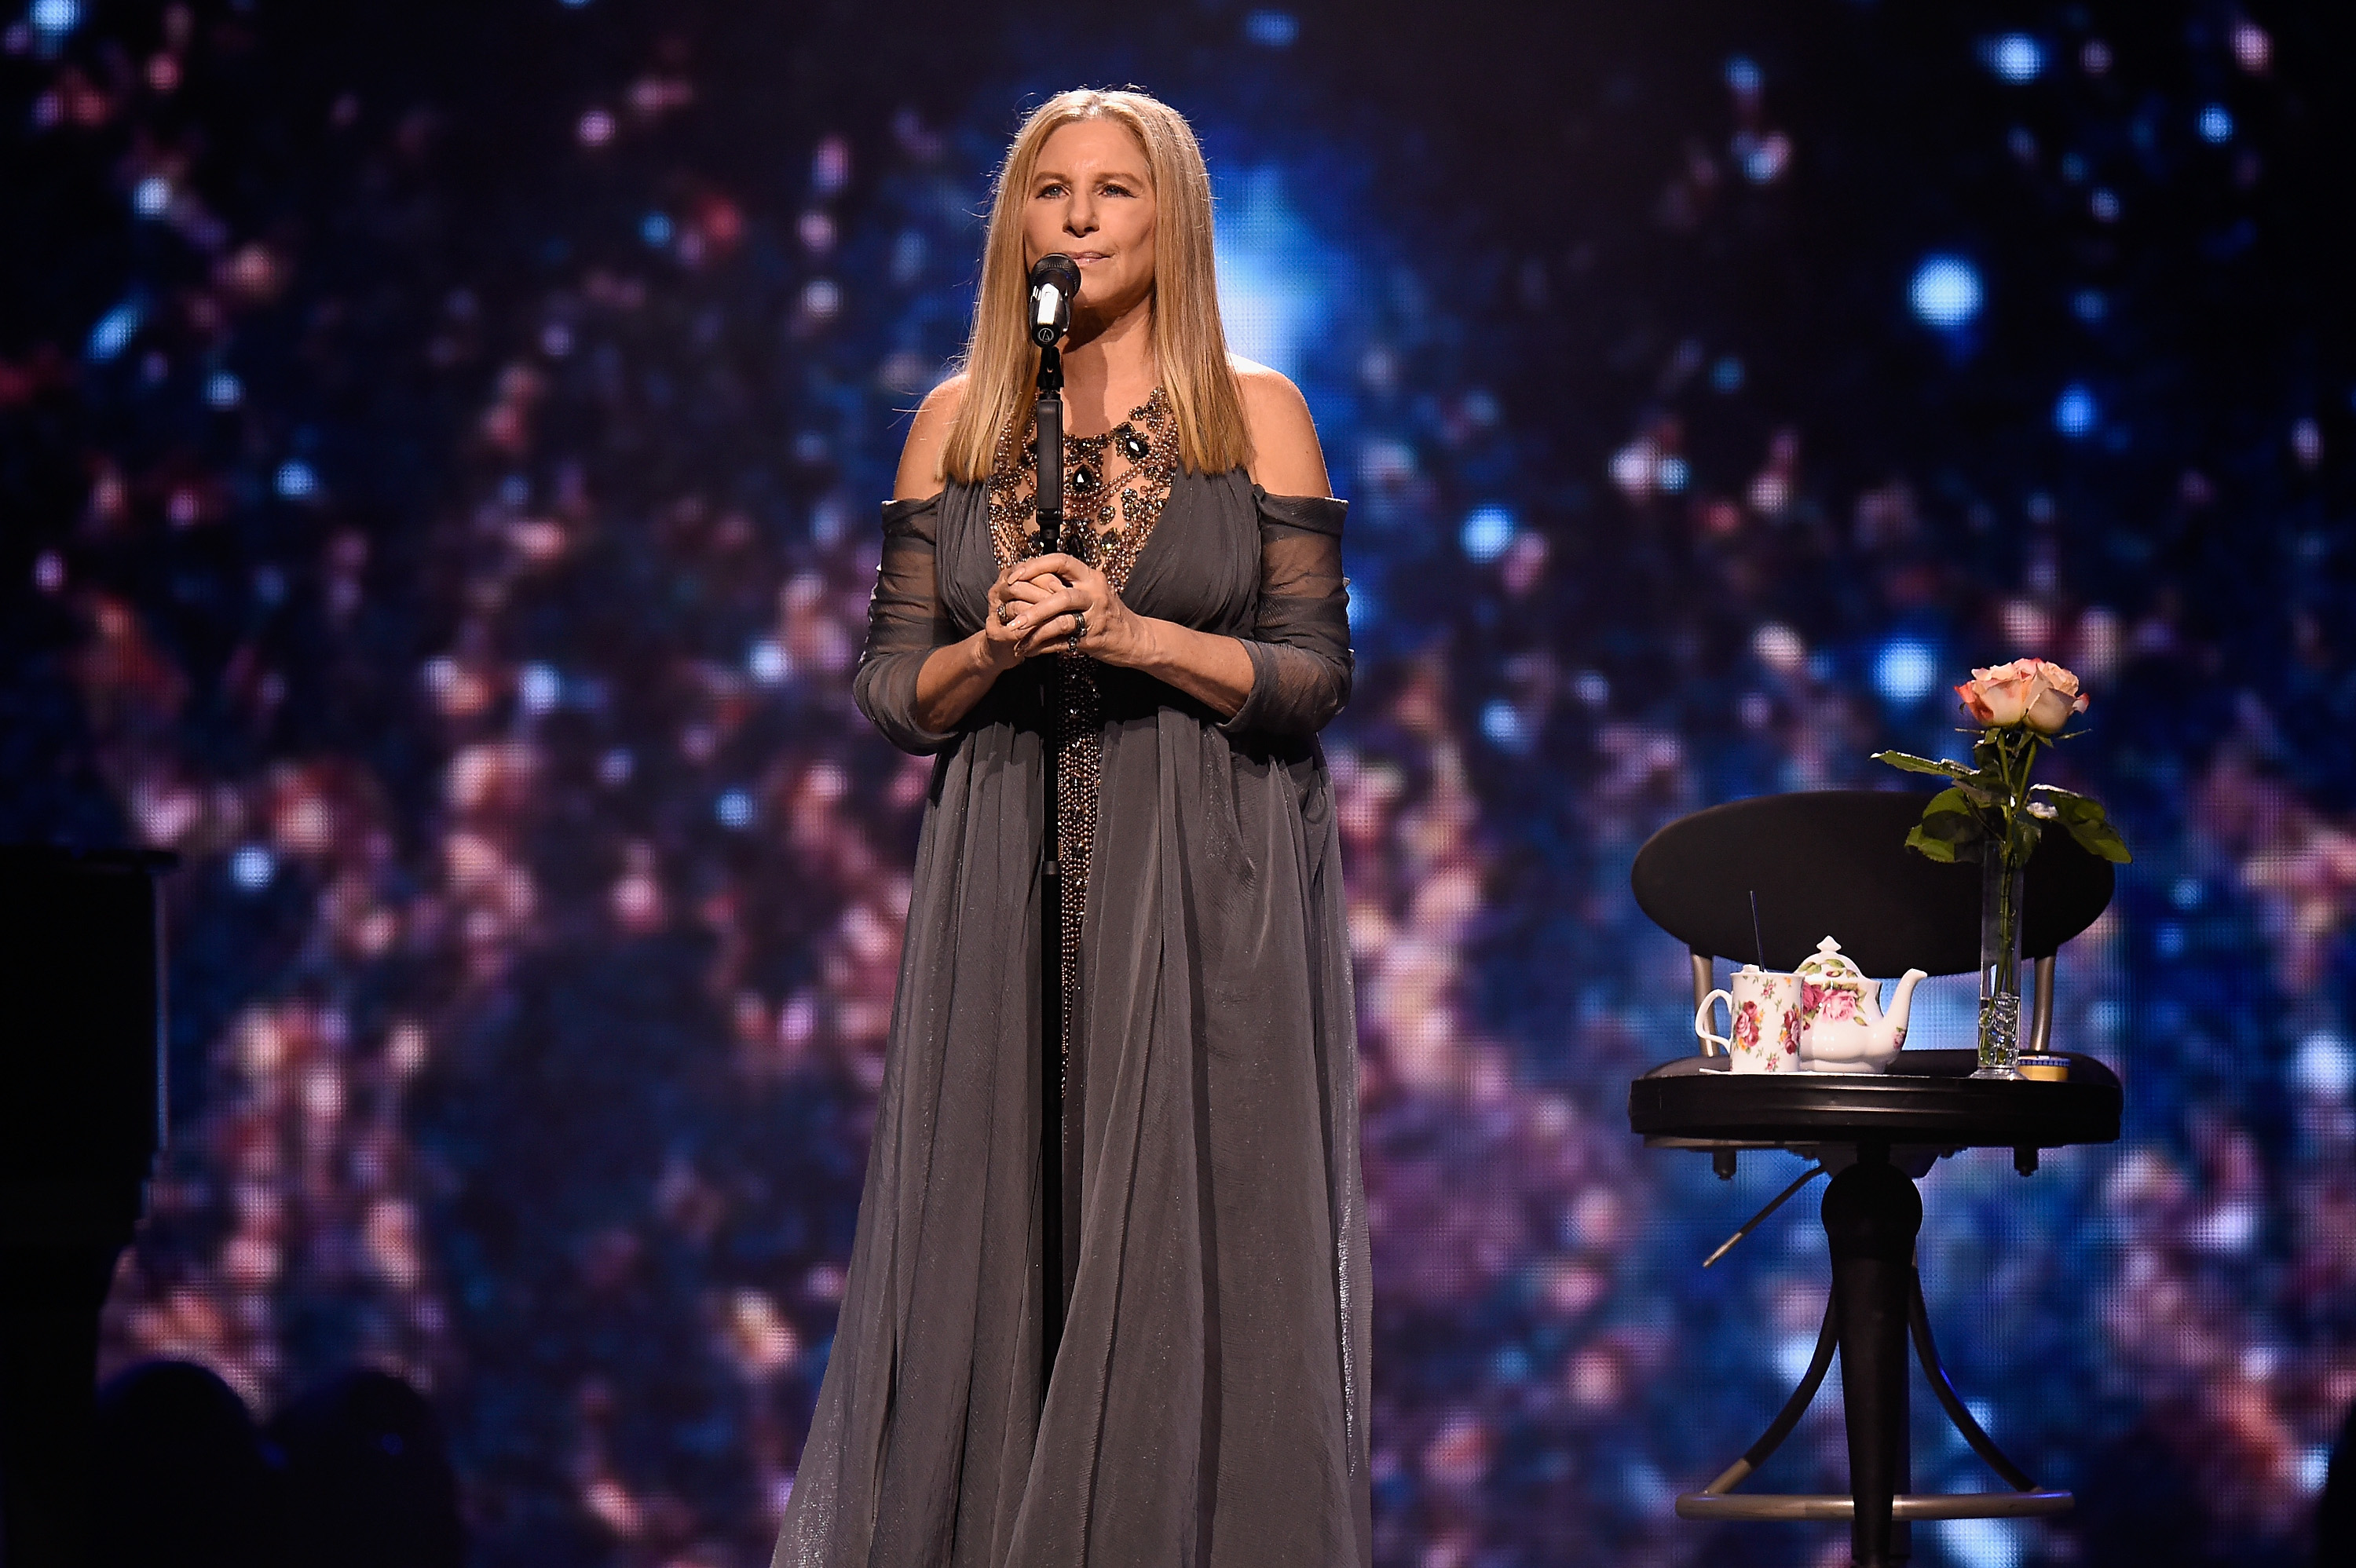 Barbra Streisand performs onstage during Barbra - The Music... The Mem'ries... The Magic! Tour at Barclays Center of Brooklyn on August 11, 2016 in New York.